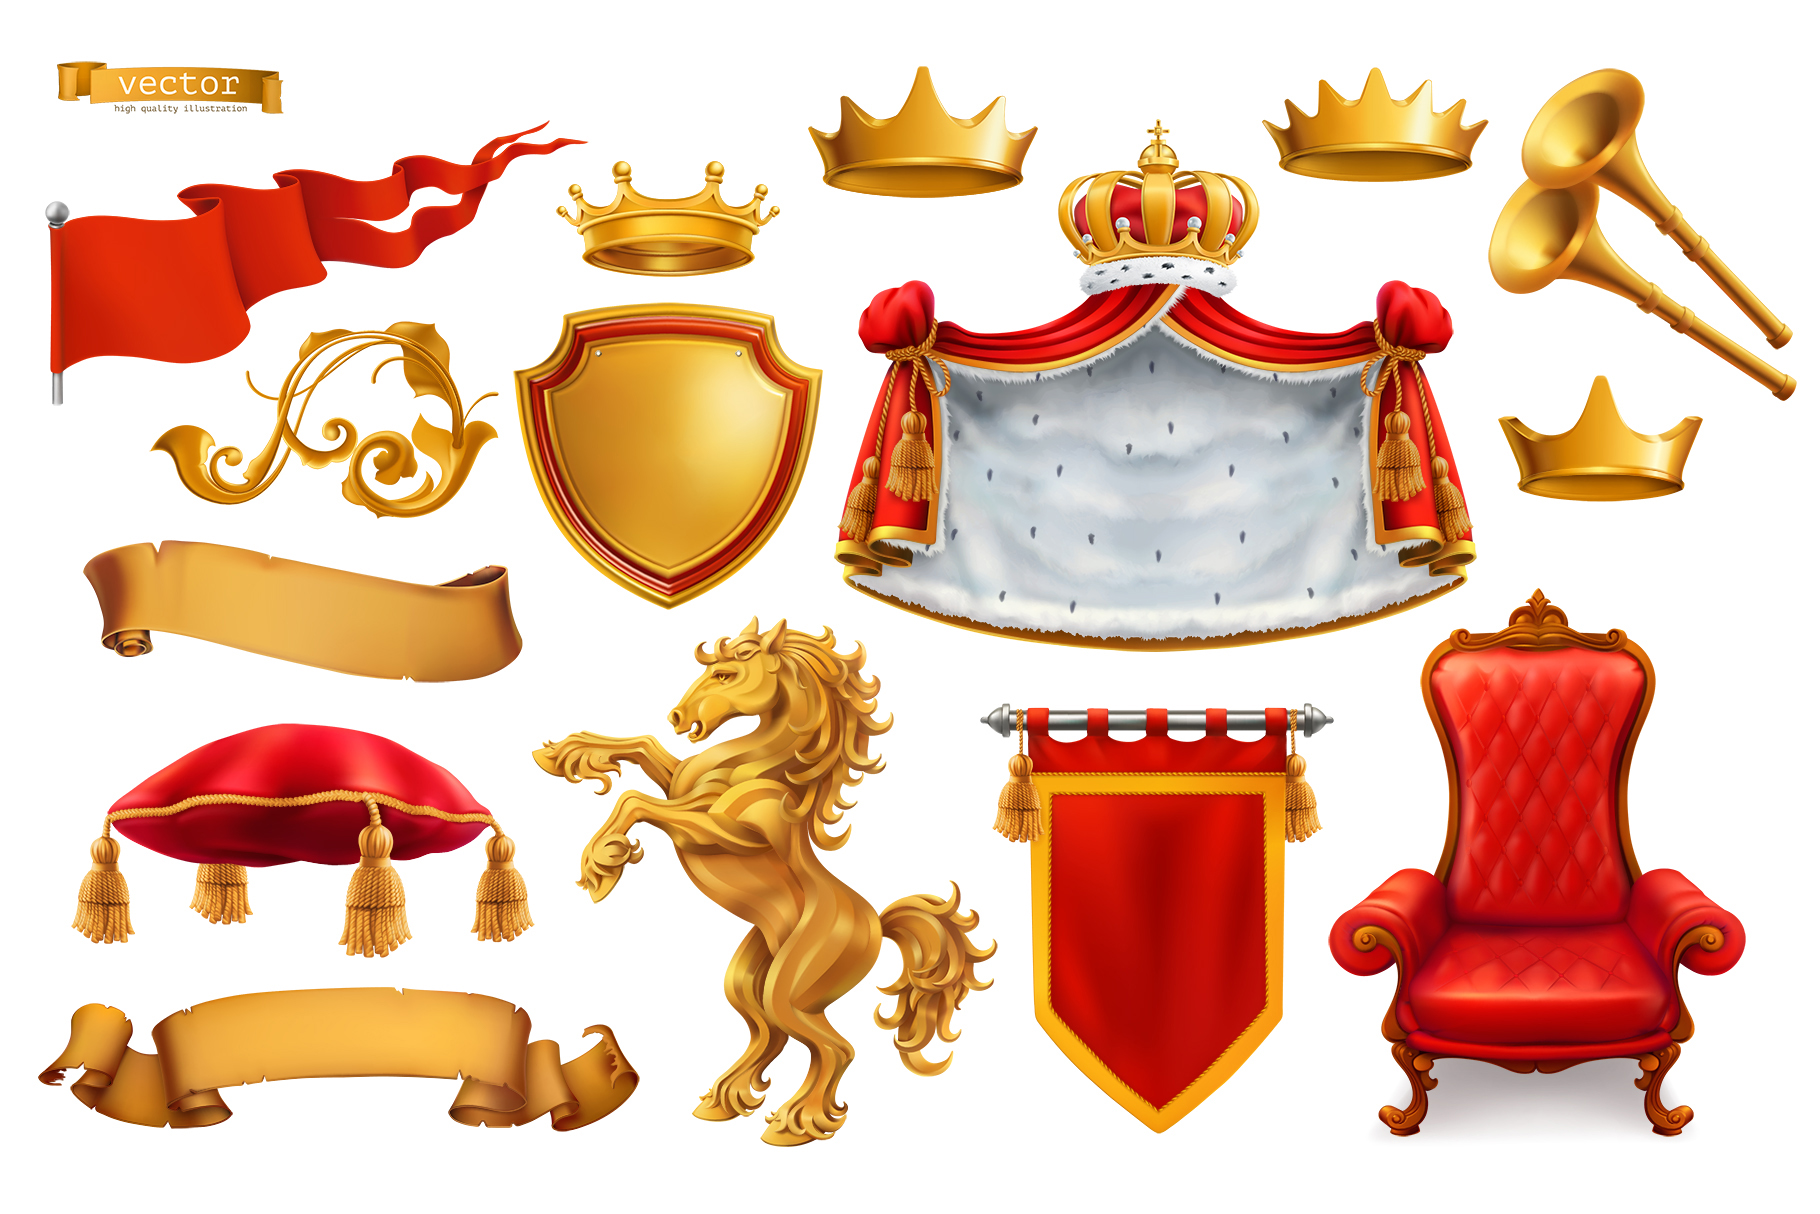 Heraldic set. Award. Royal crown, queen, king symbol, vector example image 1